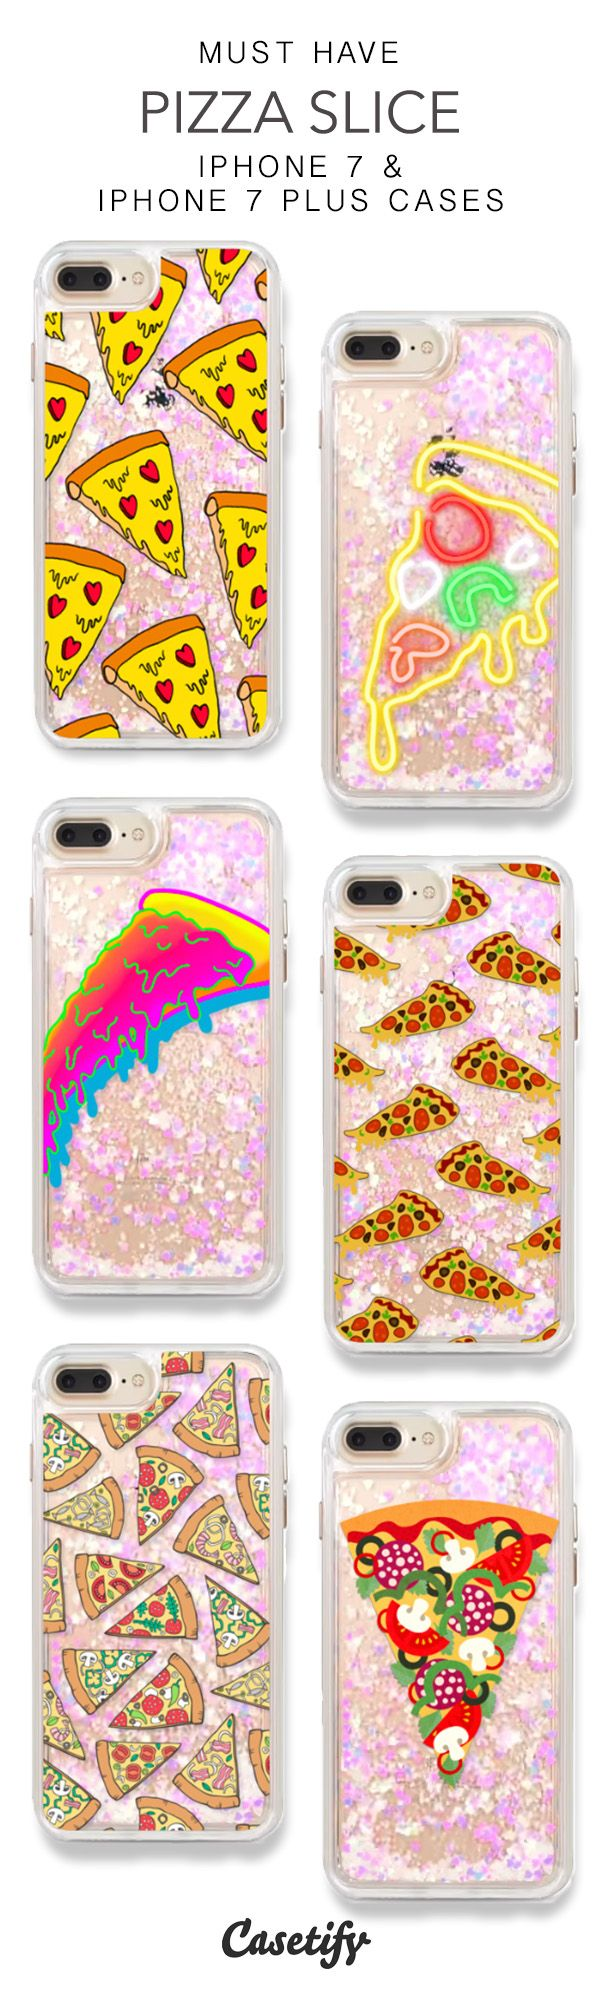 Most Popular Pizza Slice iPhone 7 Cases & iPhone 7 Plus Cases. More Foodie glitter protective iPhone case here > https://www.casetify.com/en_US/collections/iphone-7-glitter-cases#/?vc=N0w8m3afUV